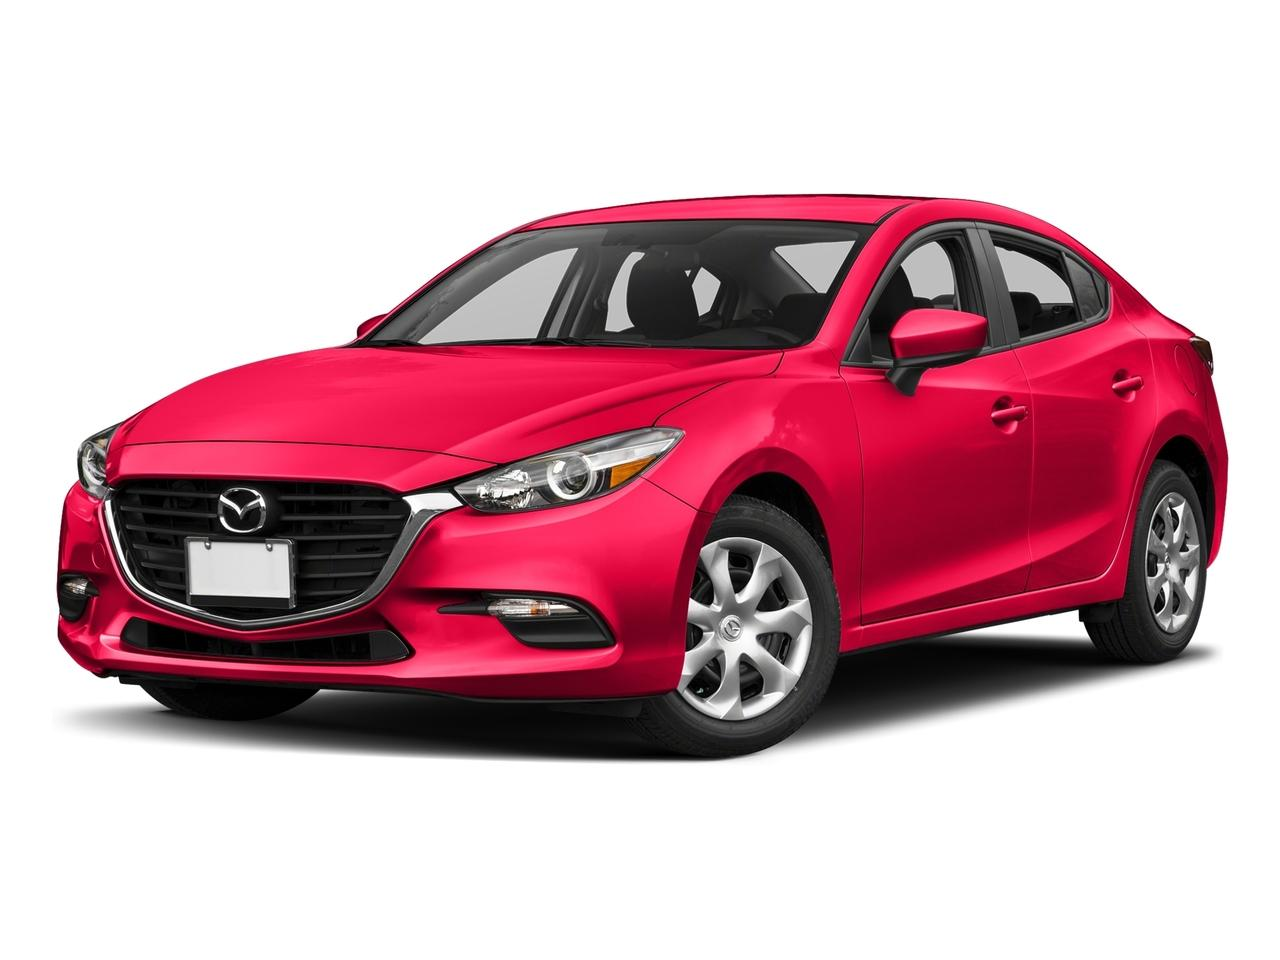 2017 Mazda Mazda3 4-Door Vehicle Photo in Edinburg, TX 78539